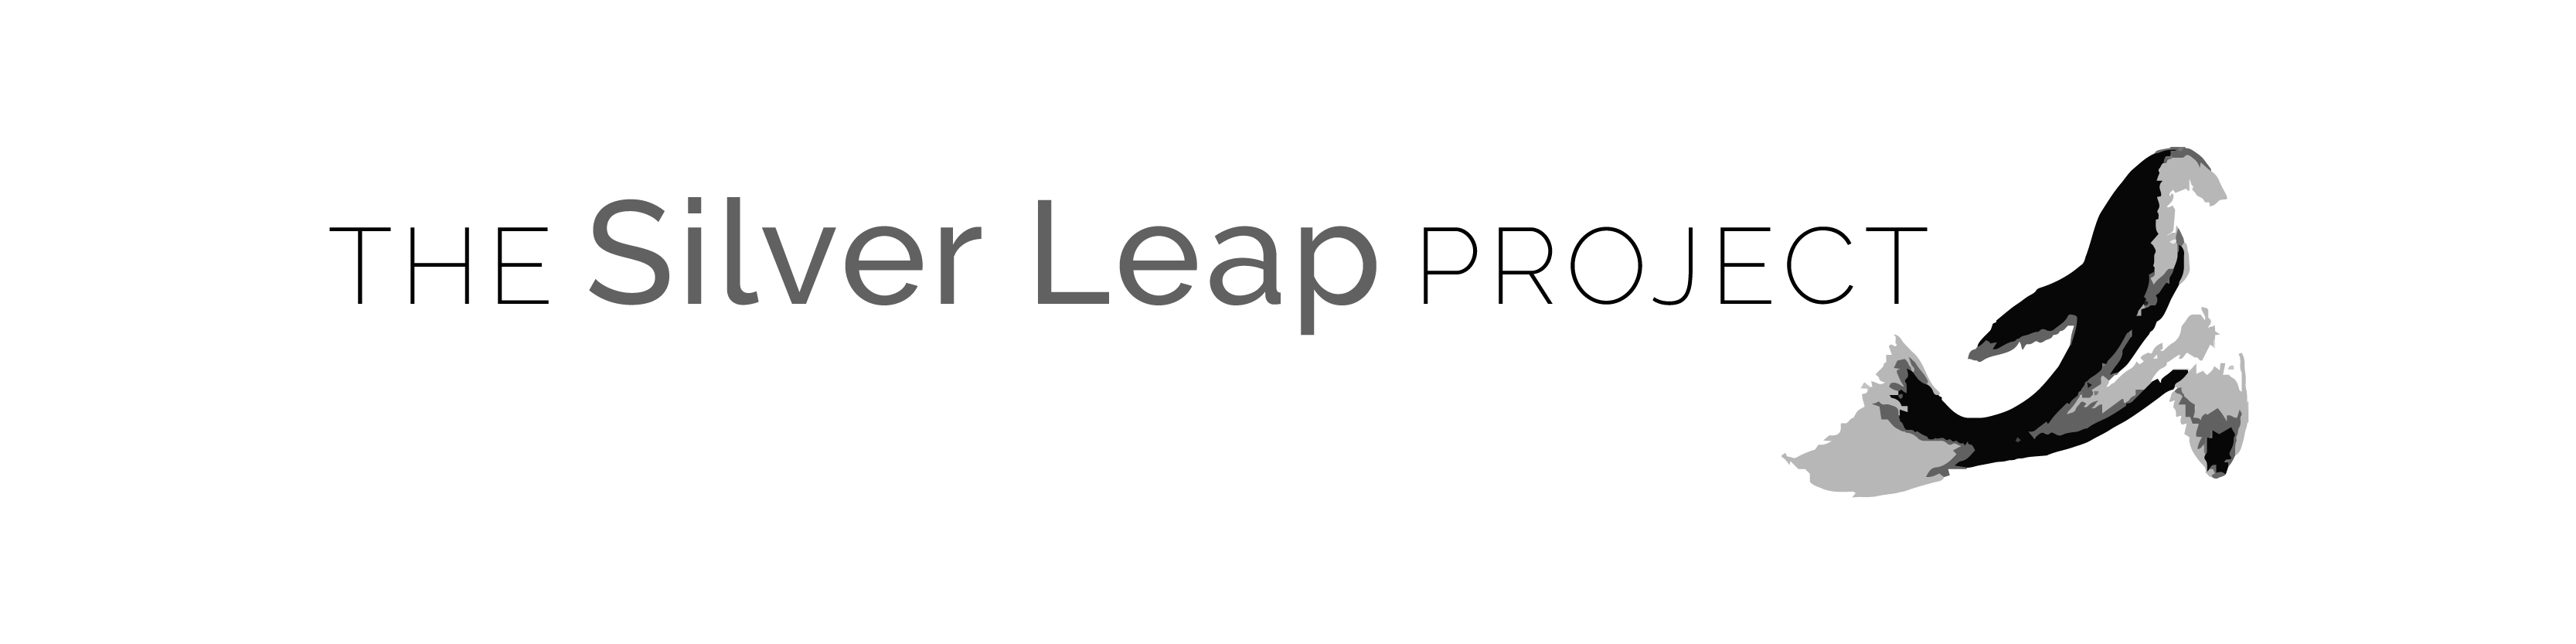 The Silver Leap Project